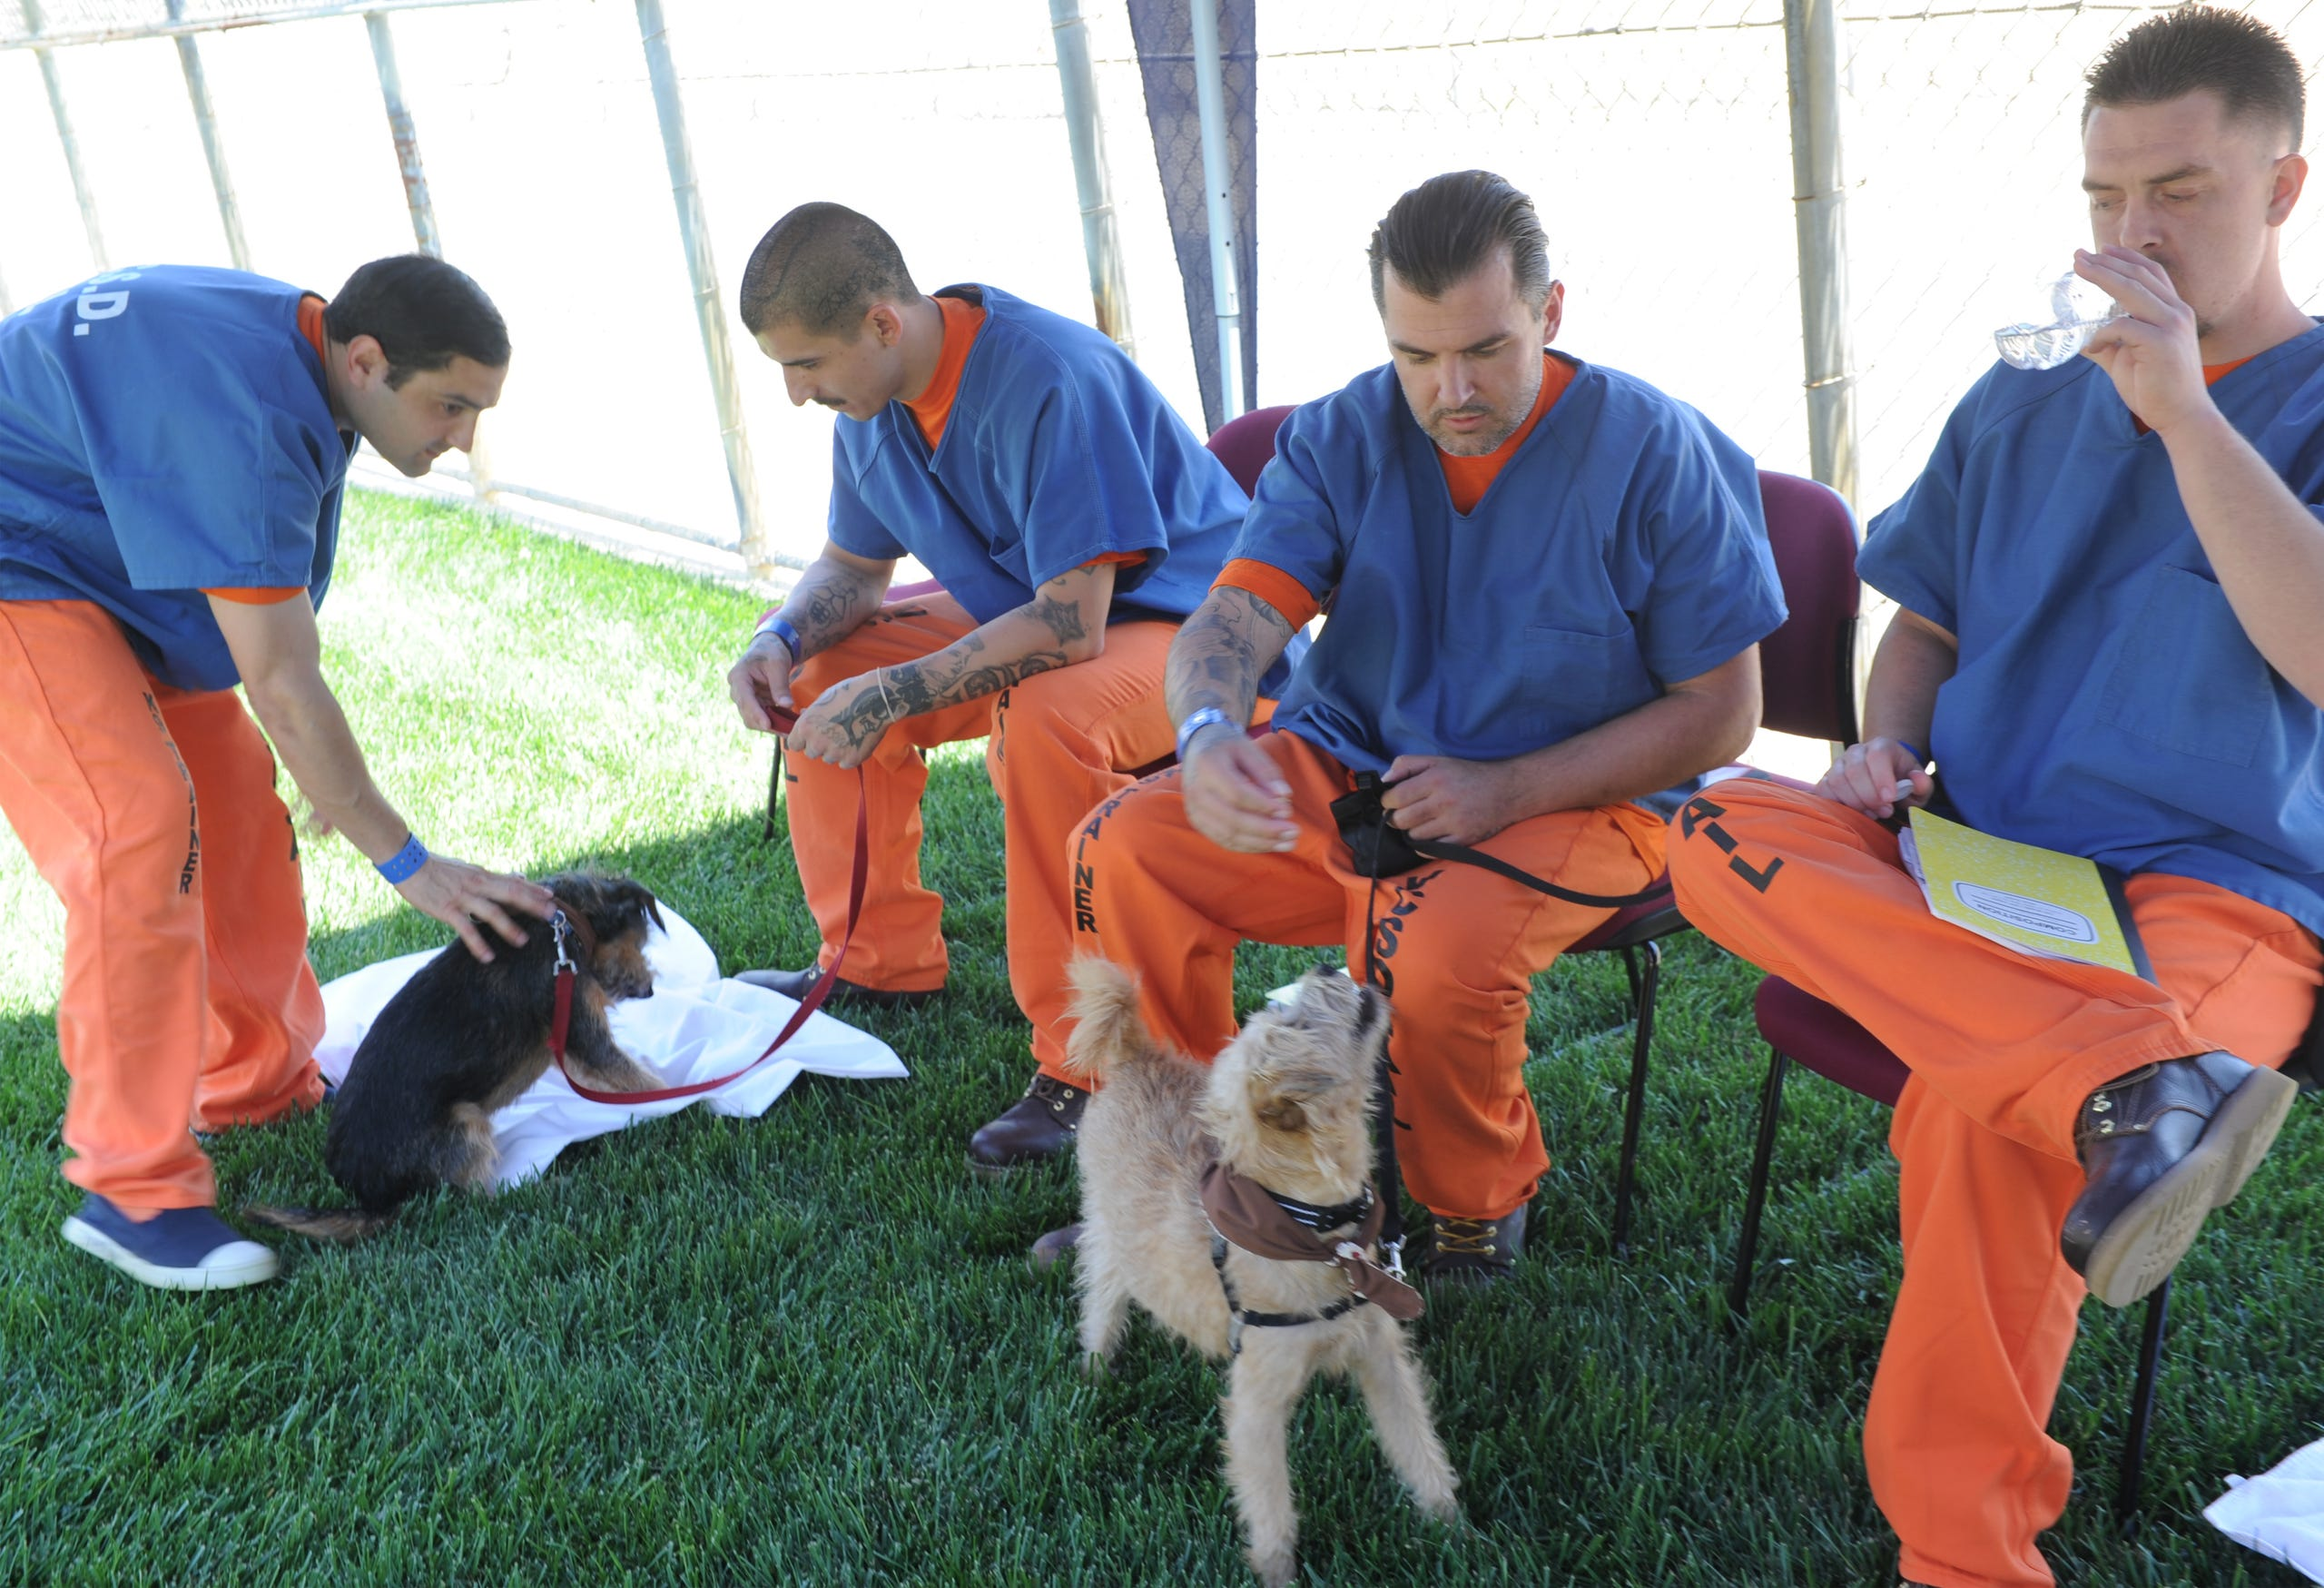 Therapy dogs trained by Ventura County inmates move on to